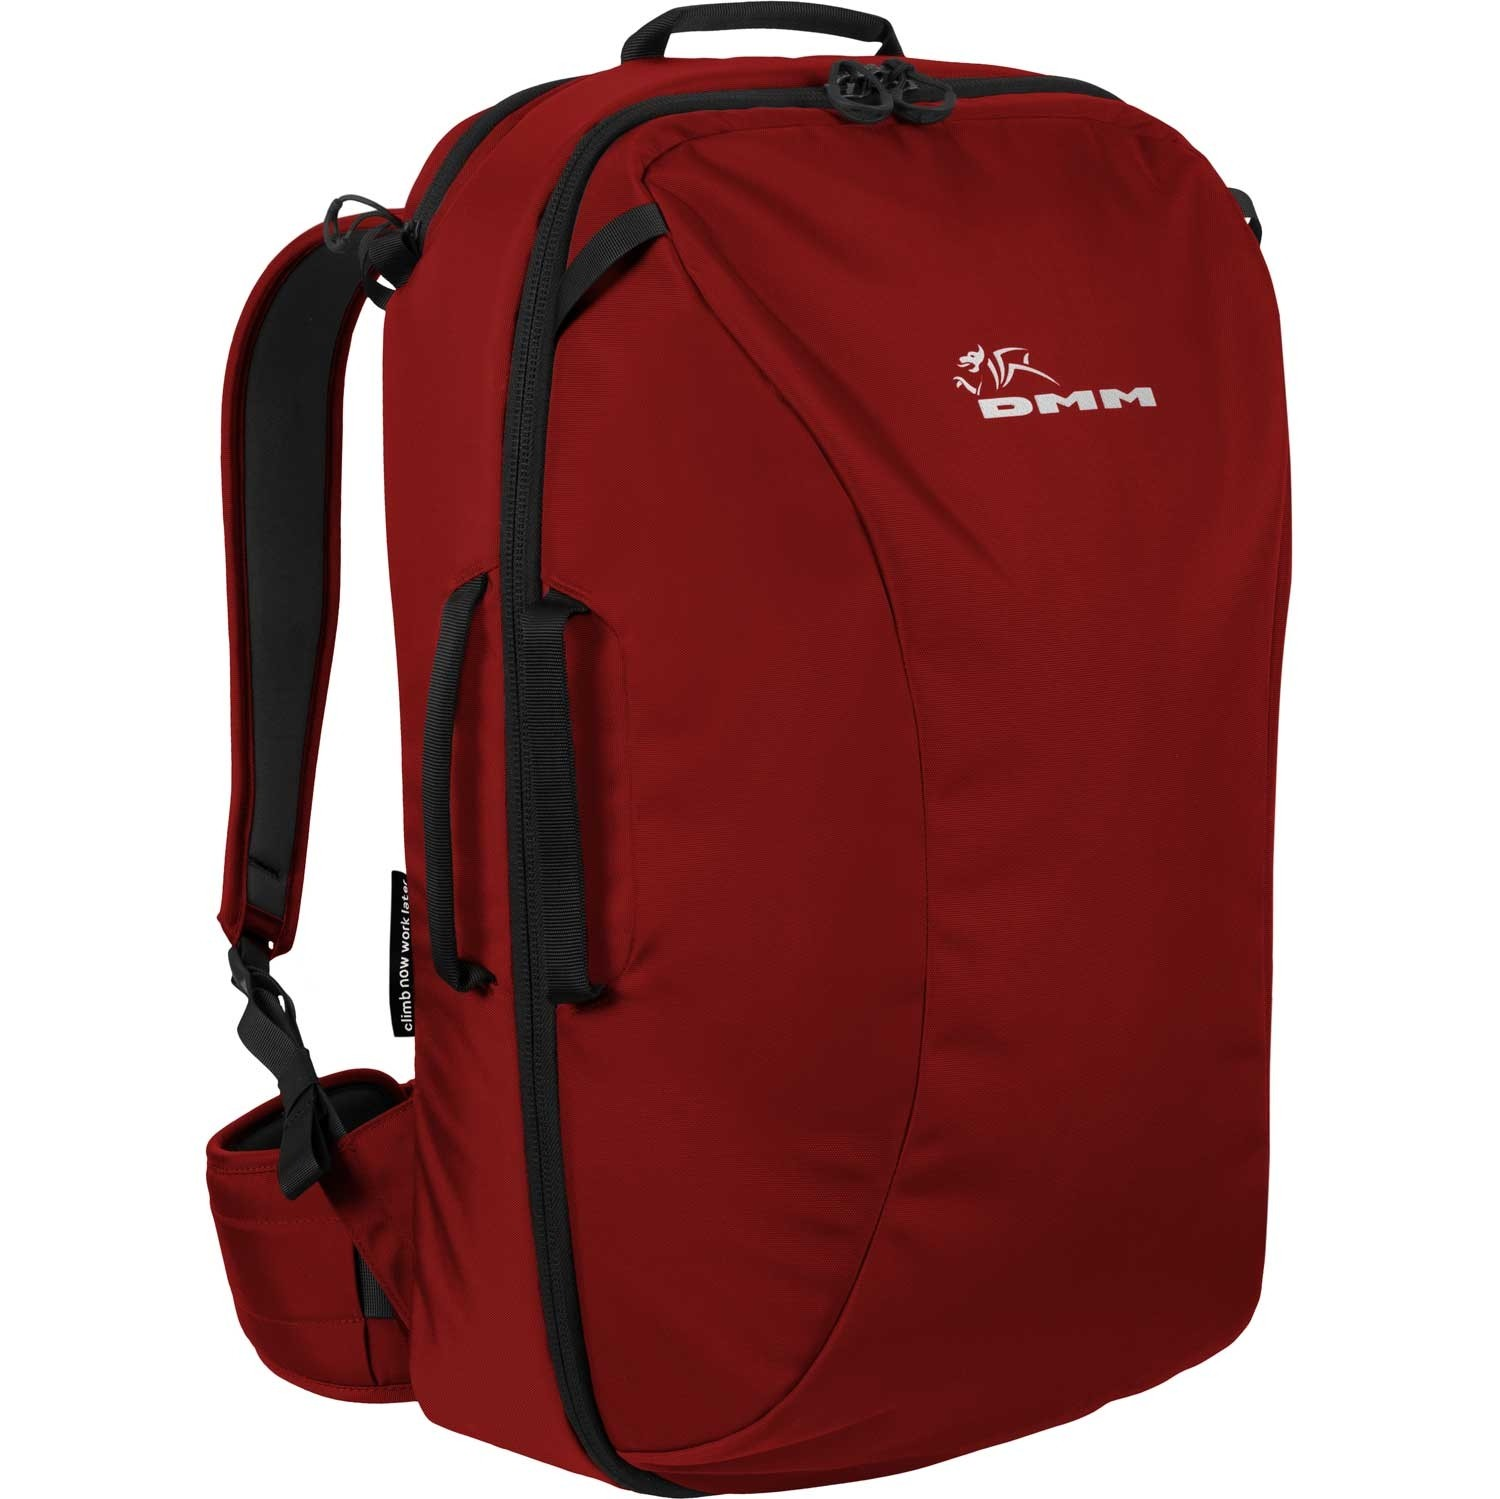 DMM Flight Rucksack - Red